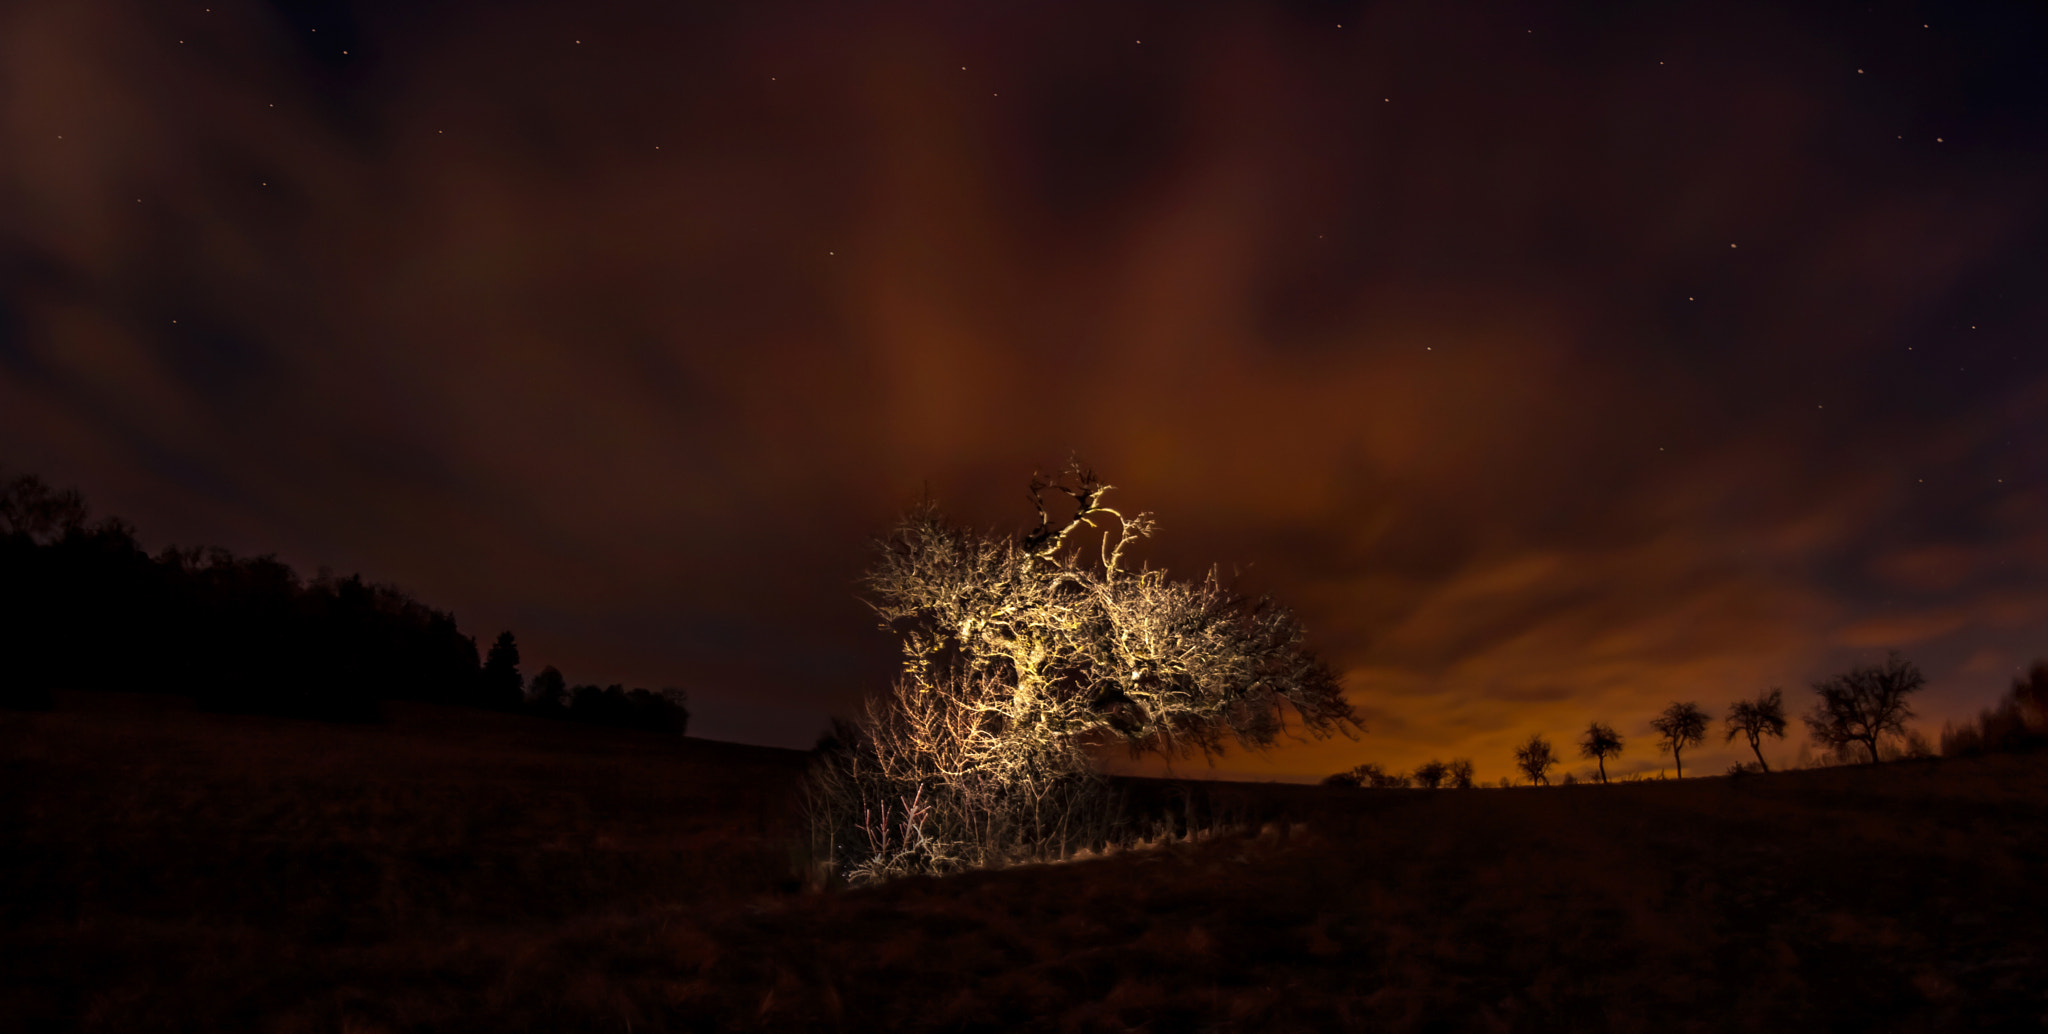 Photograph Mystery Tree by NICOLAI BÖNIG on 500px